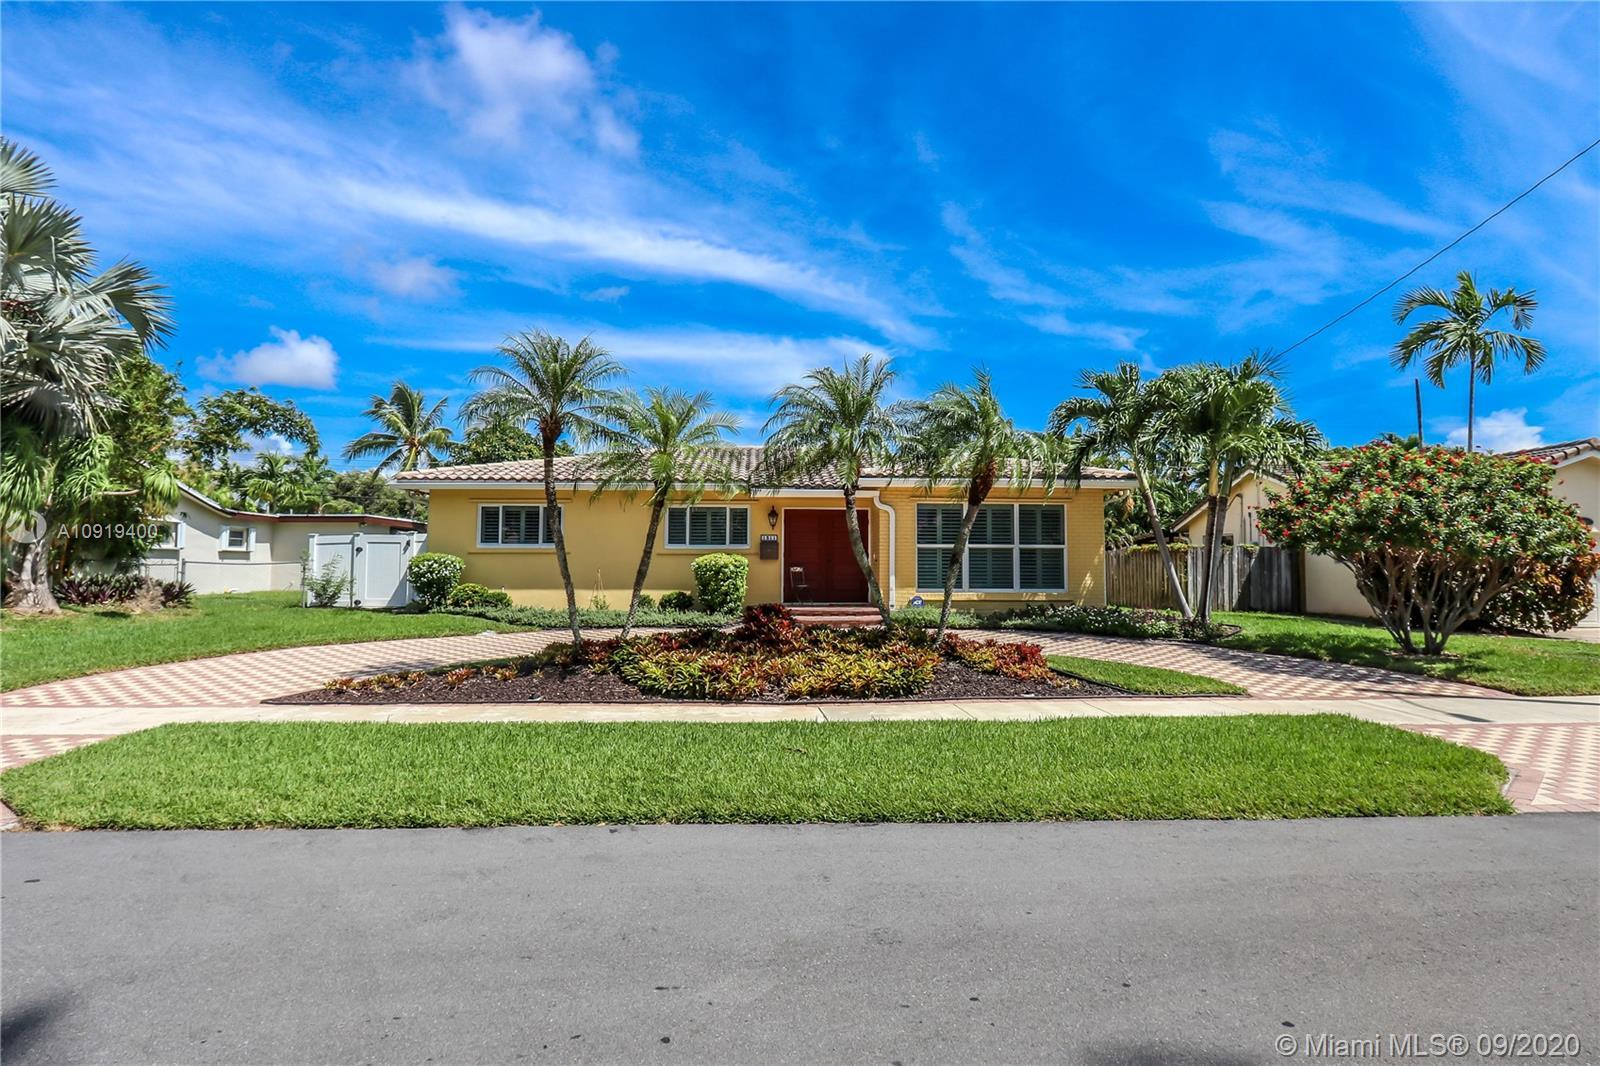 Gorgeous 3 bed/2.5 bath pool home with beautiful curb appeal and tropical landscaping nestled in His